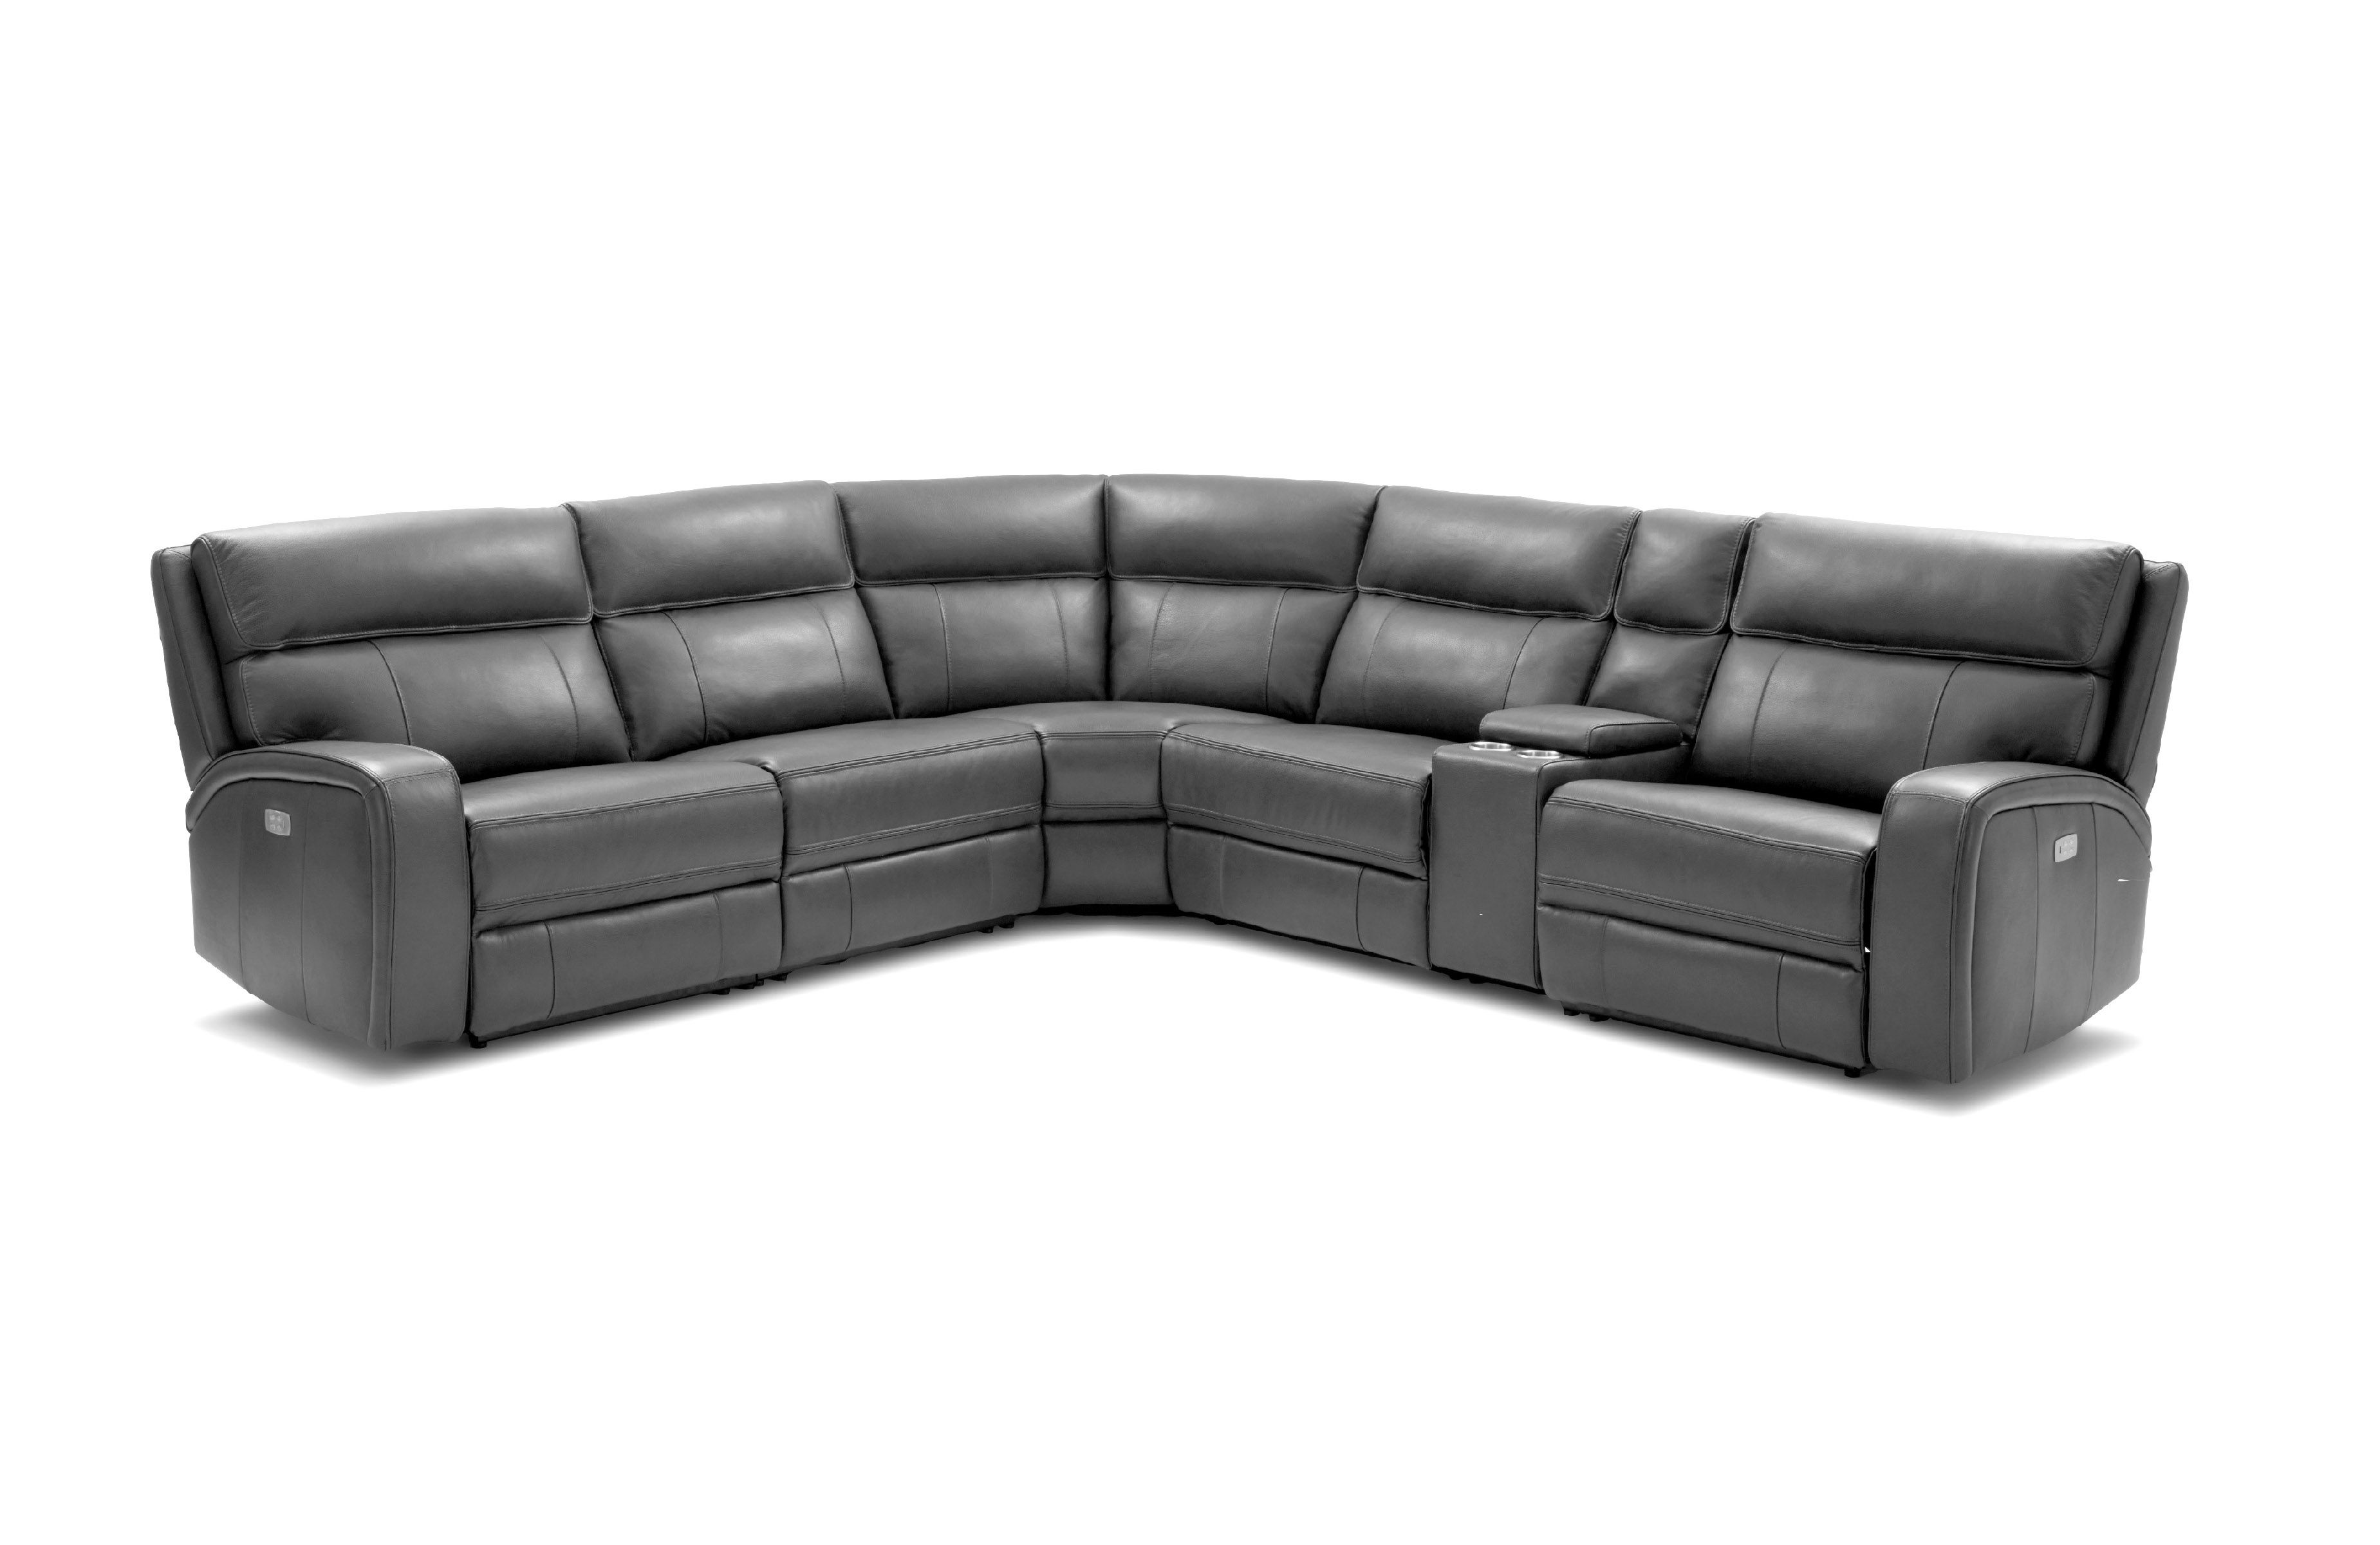 Sofaland Spain 106 Best Corner Sectional Sofas Images In 2019 Corner Sectional